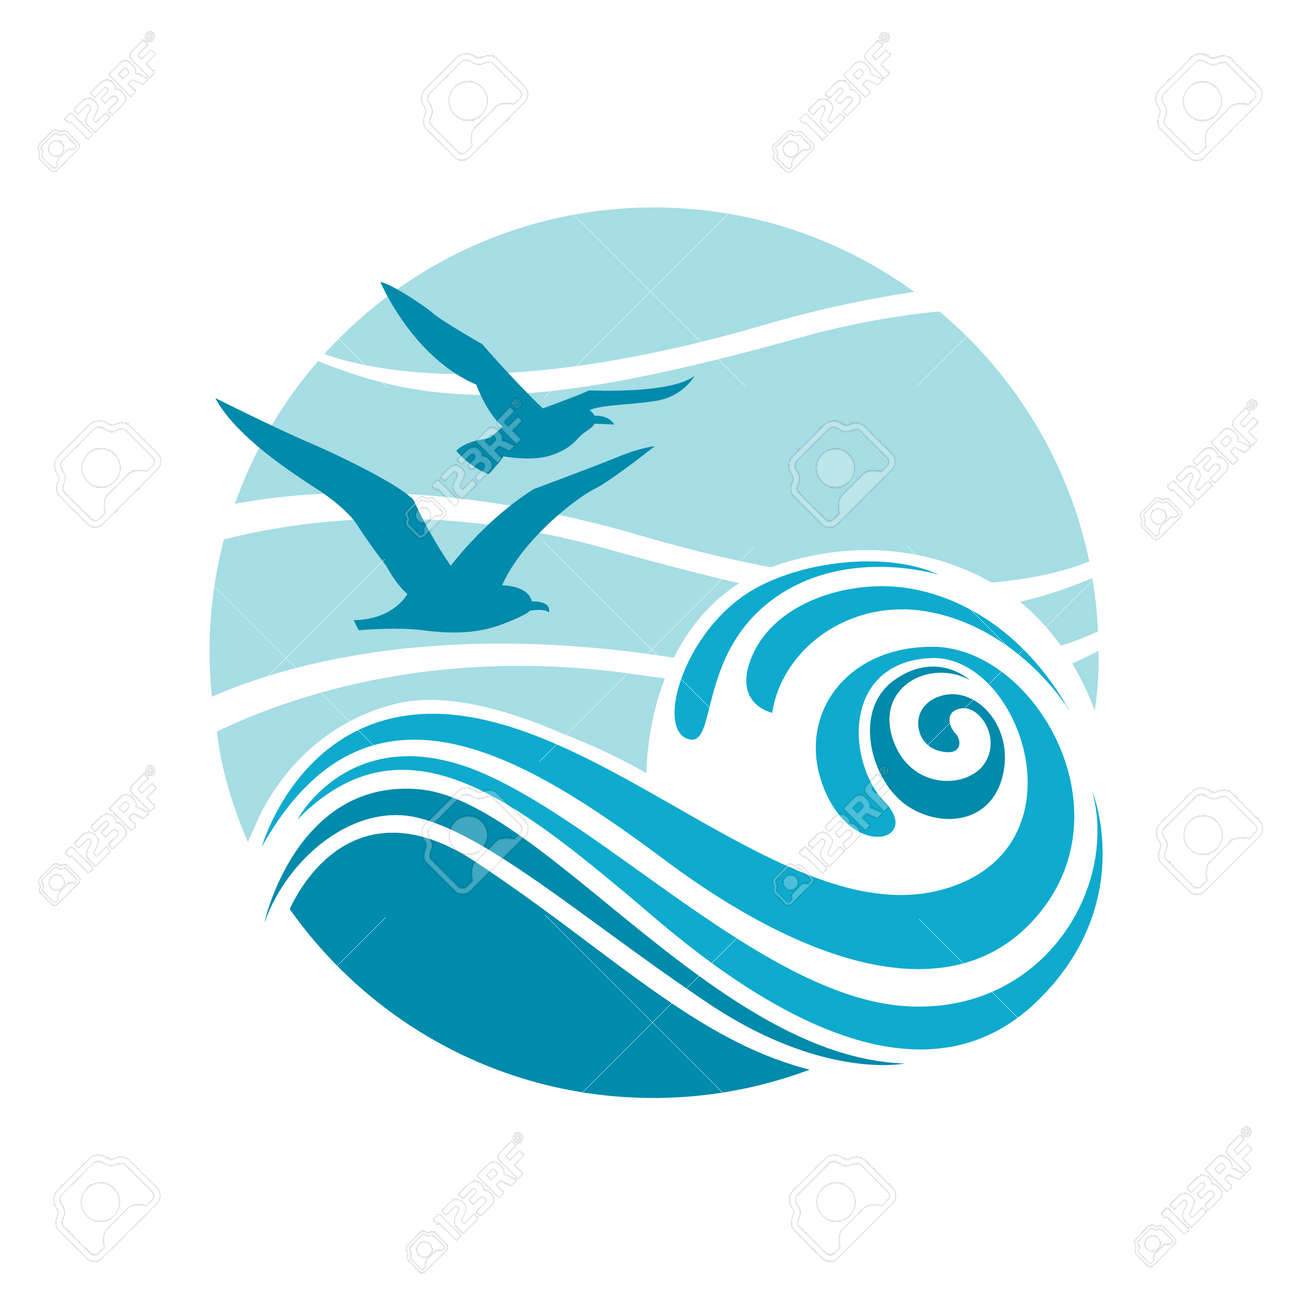 abstract design of ocean logo with waves and seagulls royalty free rh 123rf com ocean logo intro ocean logo vector